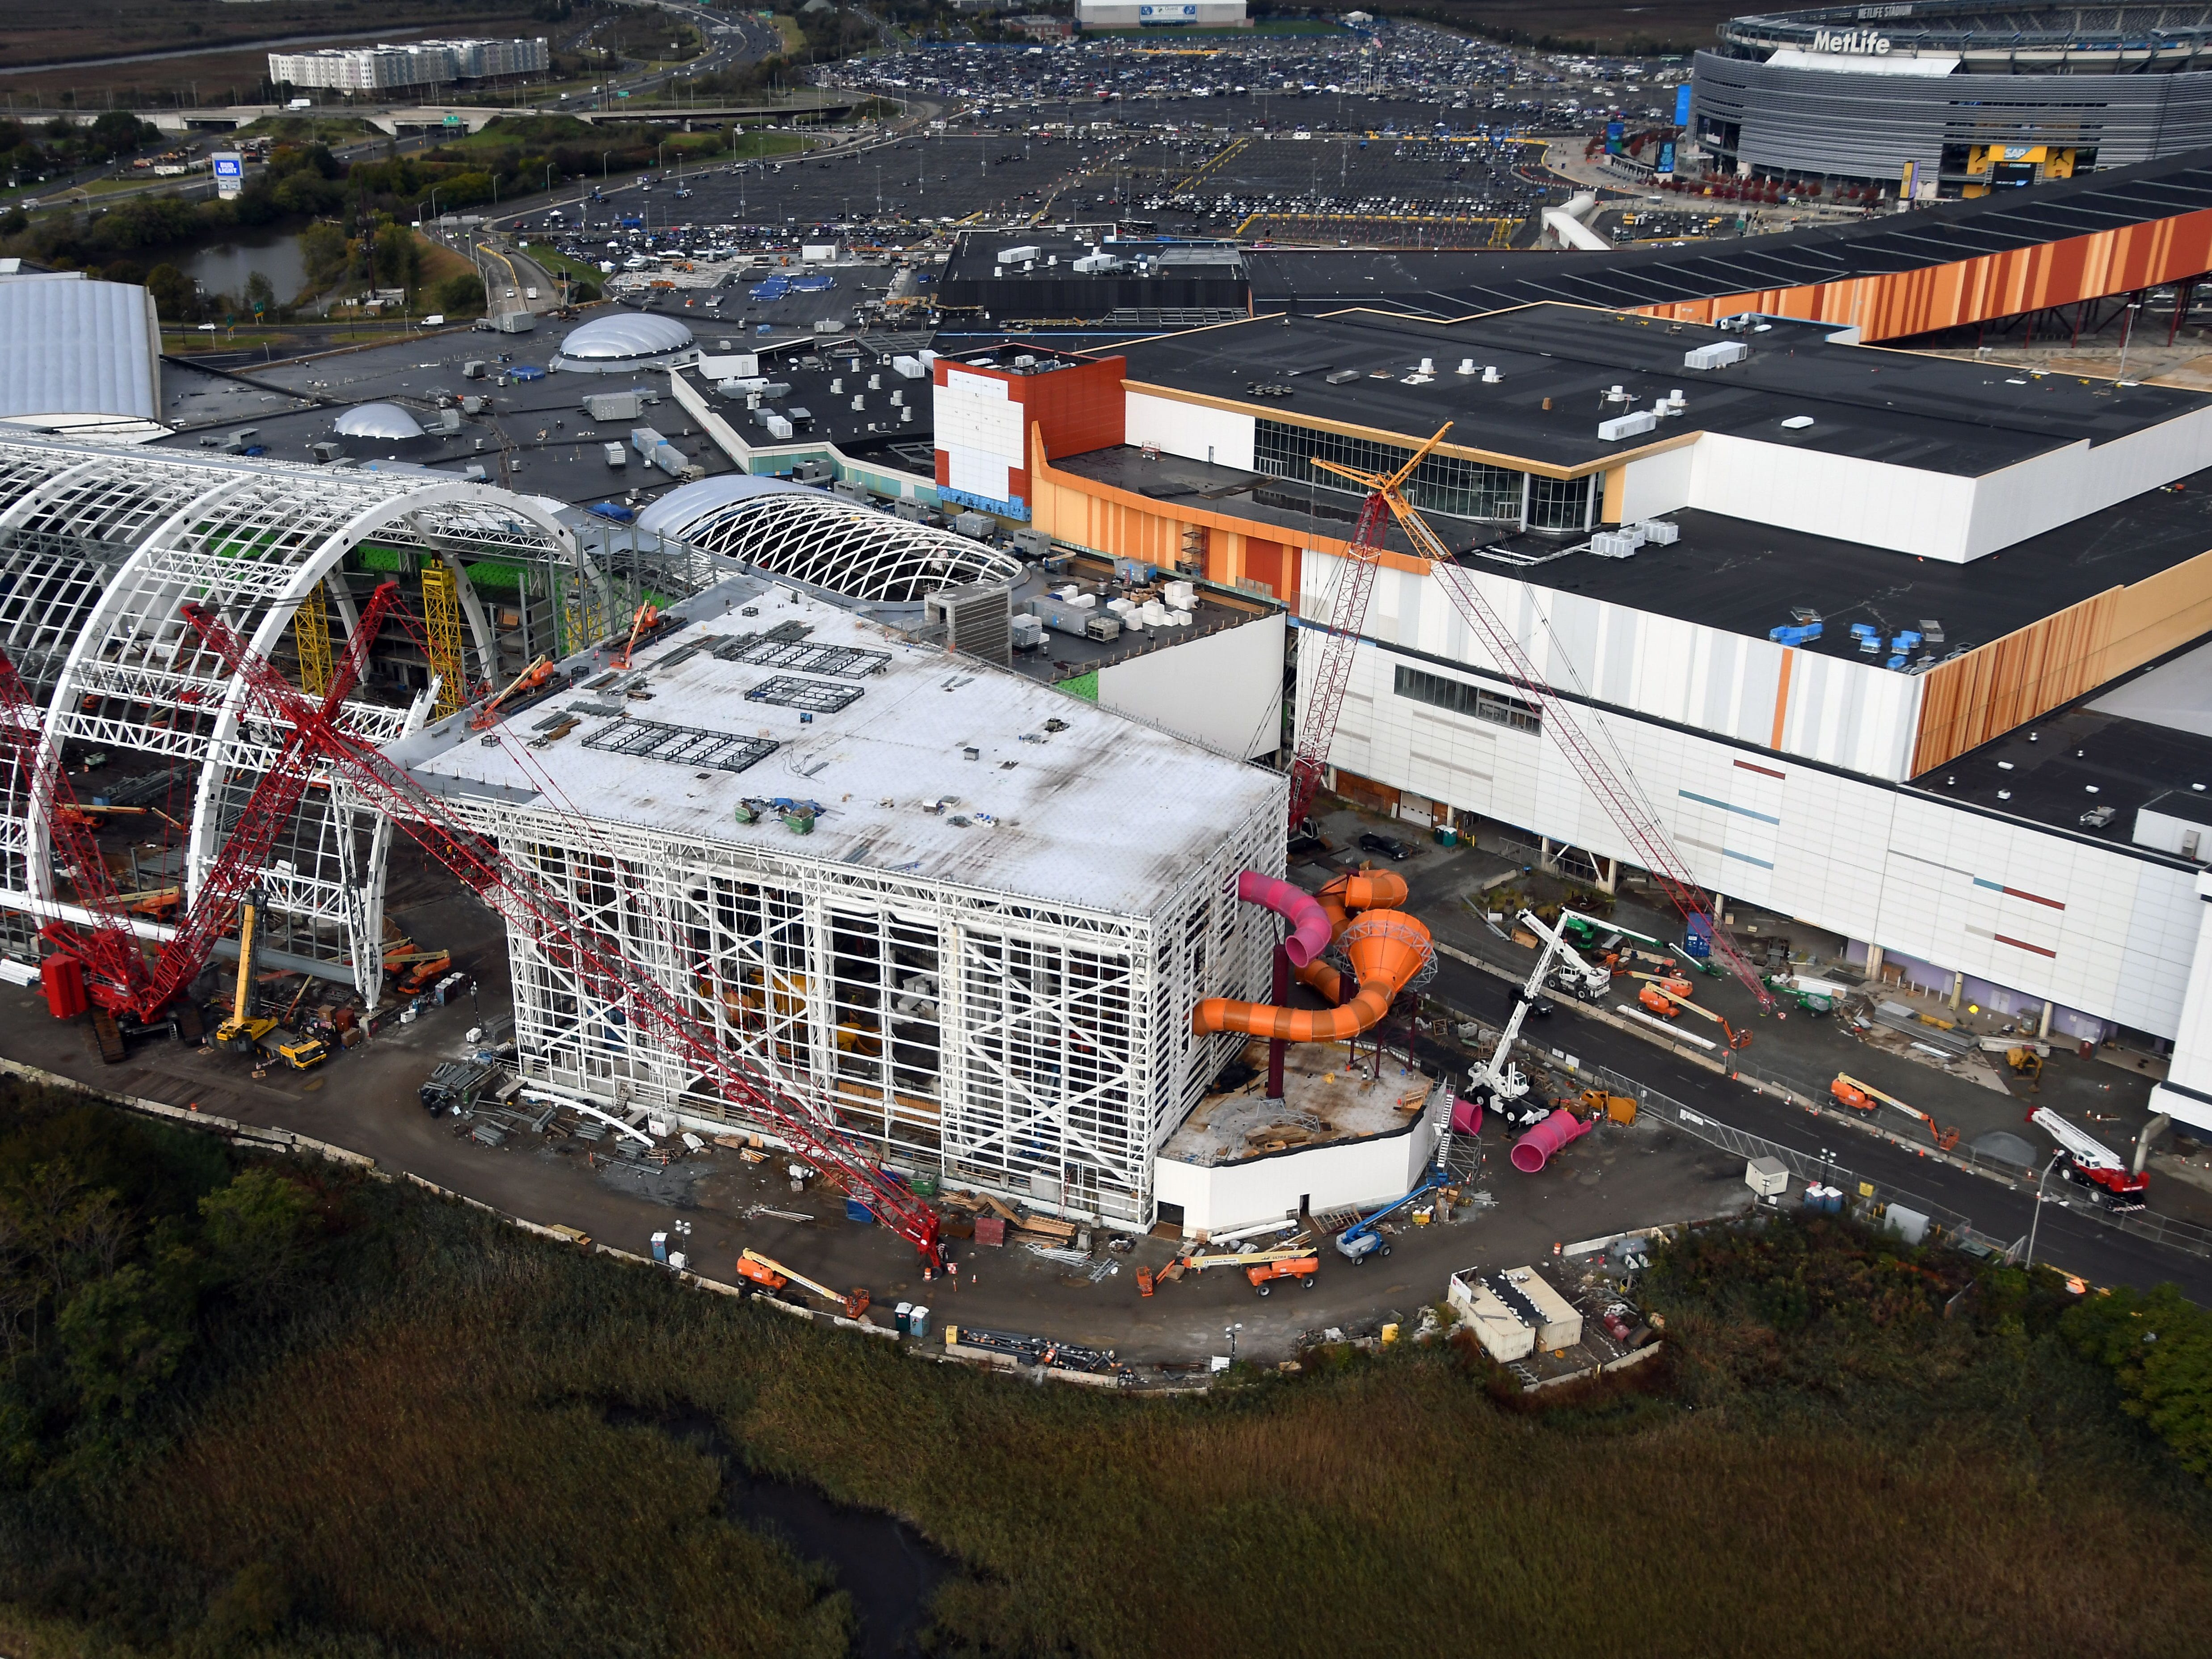 See the progress on the American Dream water park, now taking shape